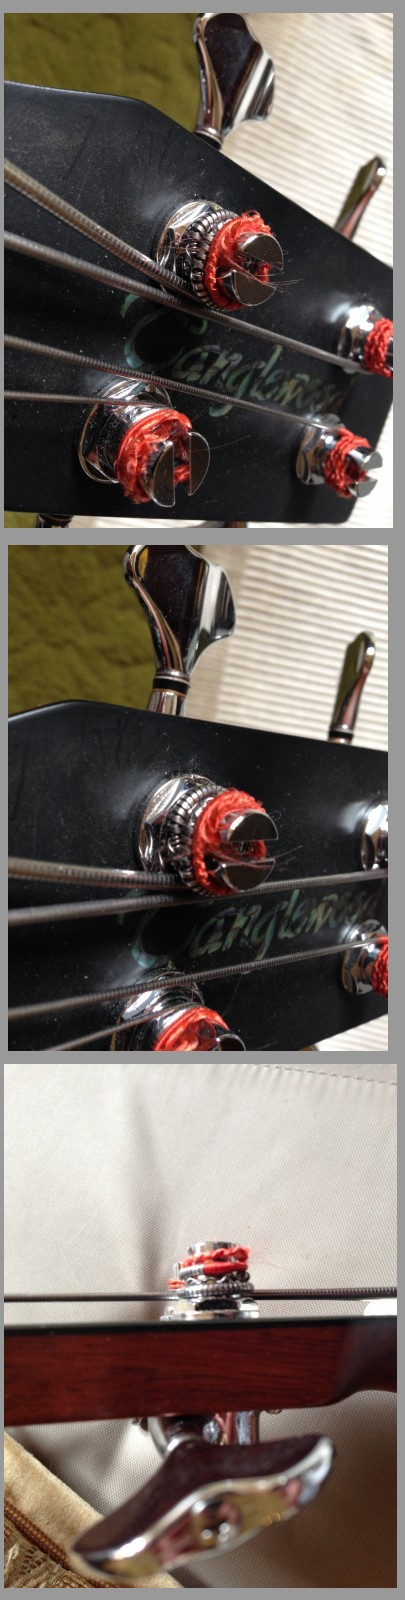 2016-07-28 Tanglewood Baby Bass Flatwound strings E wind - composite